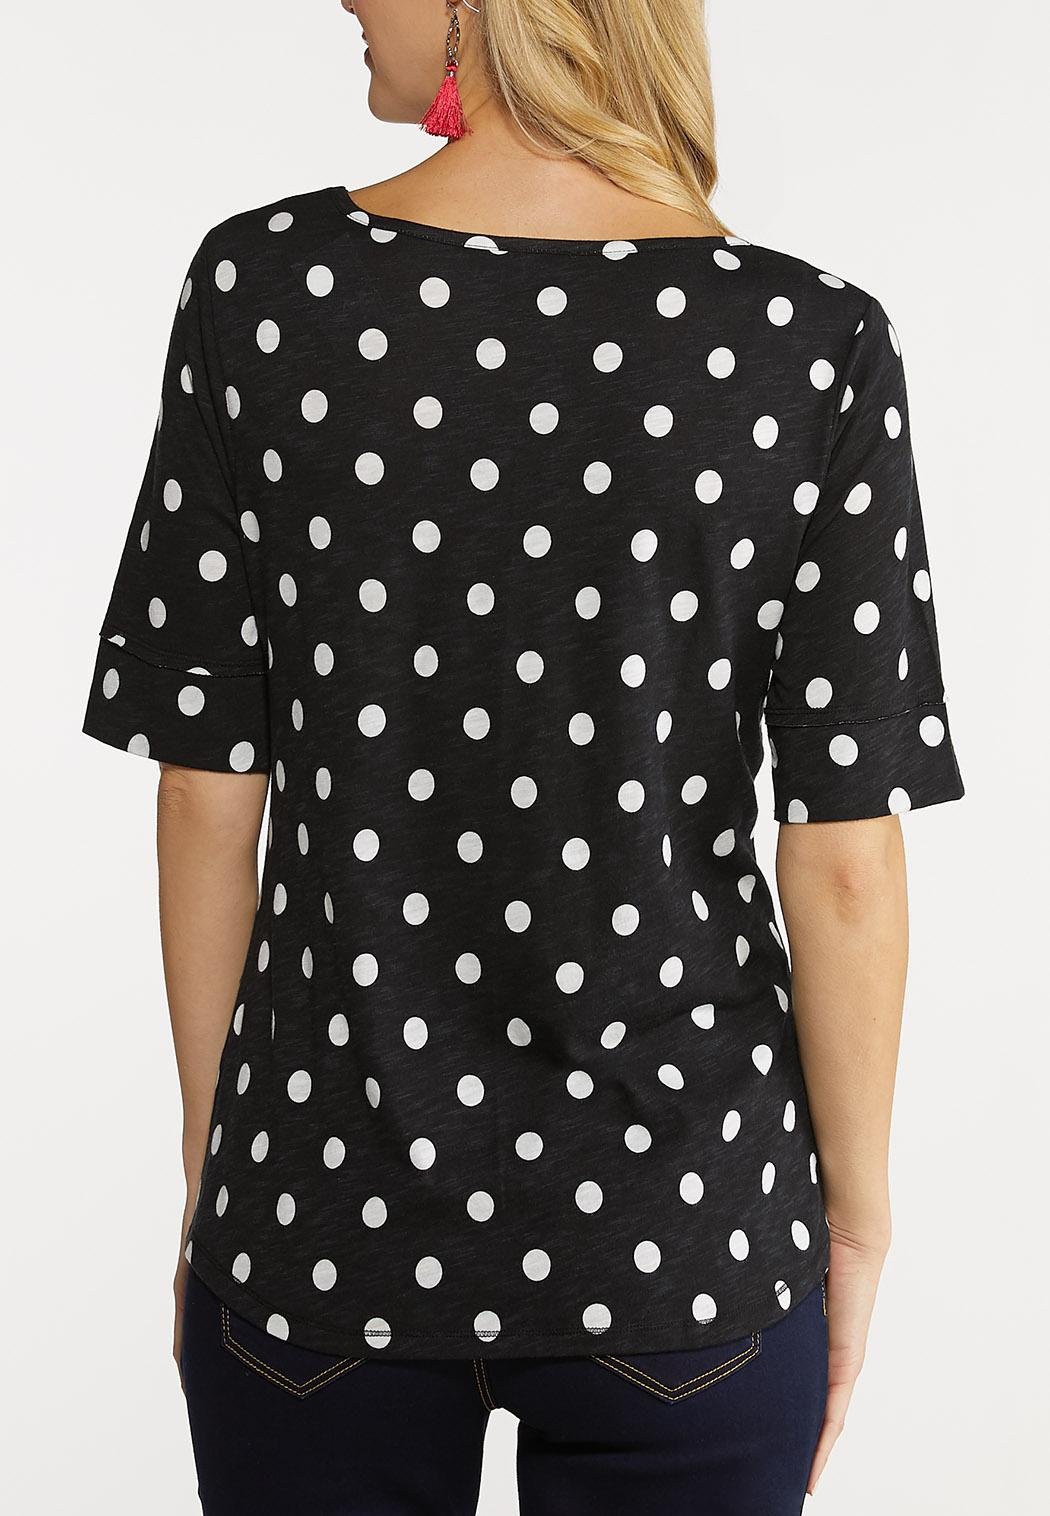 Plus Size Polka Dotted Top (Item #44126831)